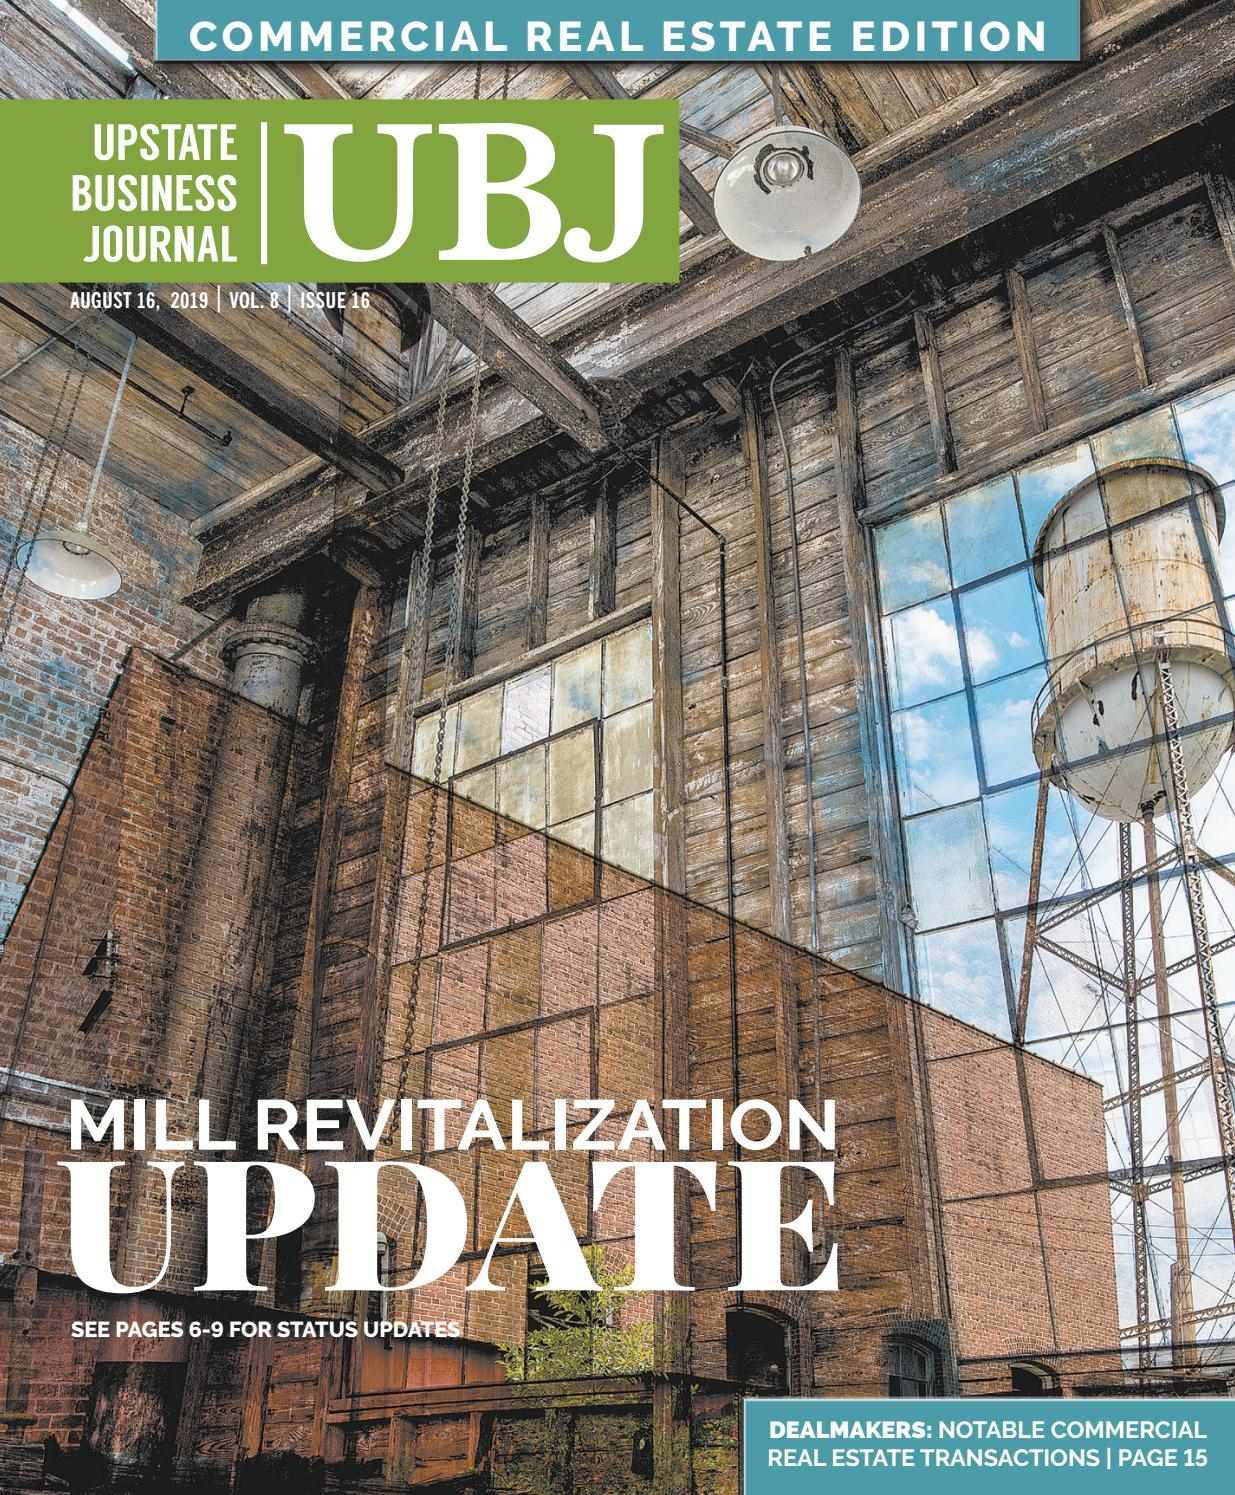 August 16, 2019 Upstate Business Journal by Community